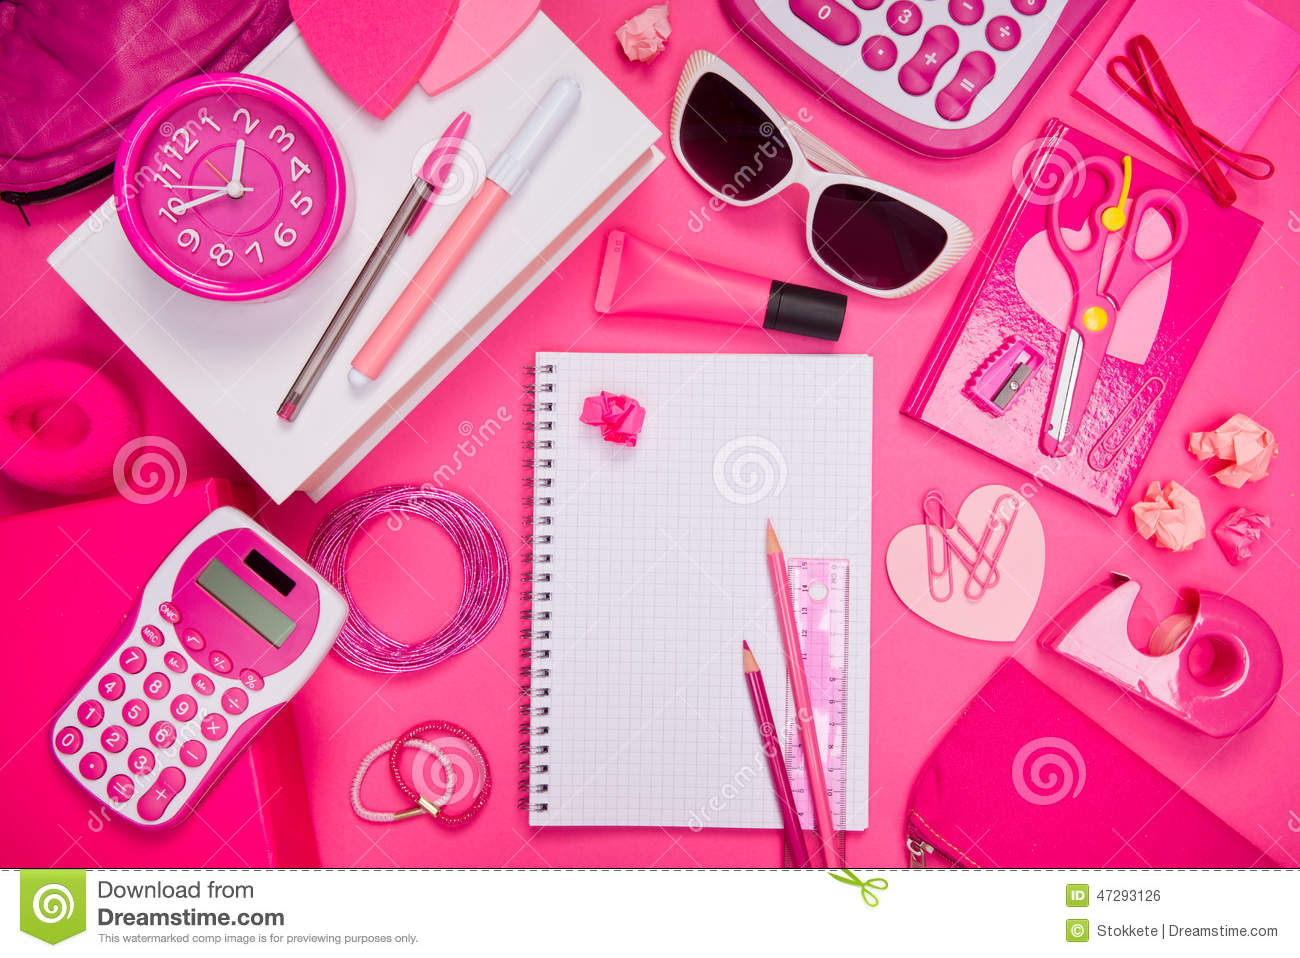 Bureau et papeterie roses girly photo stock image 47293126 for Papeterie bureau plus